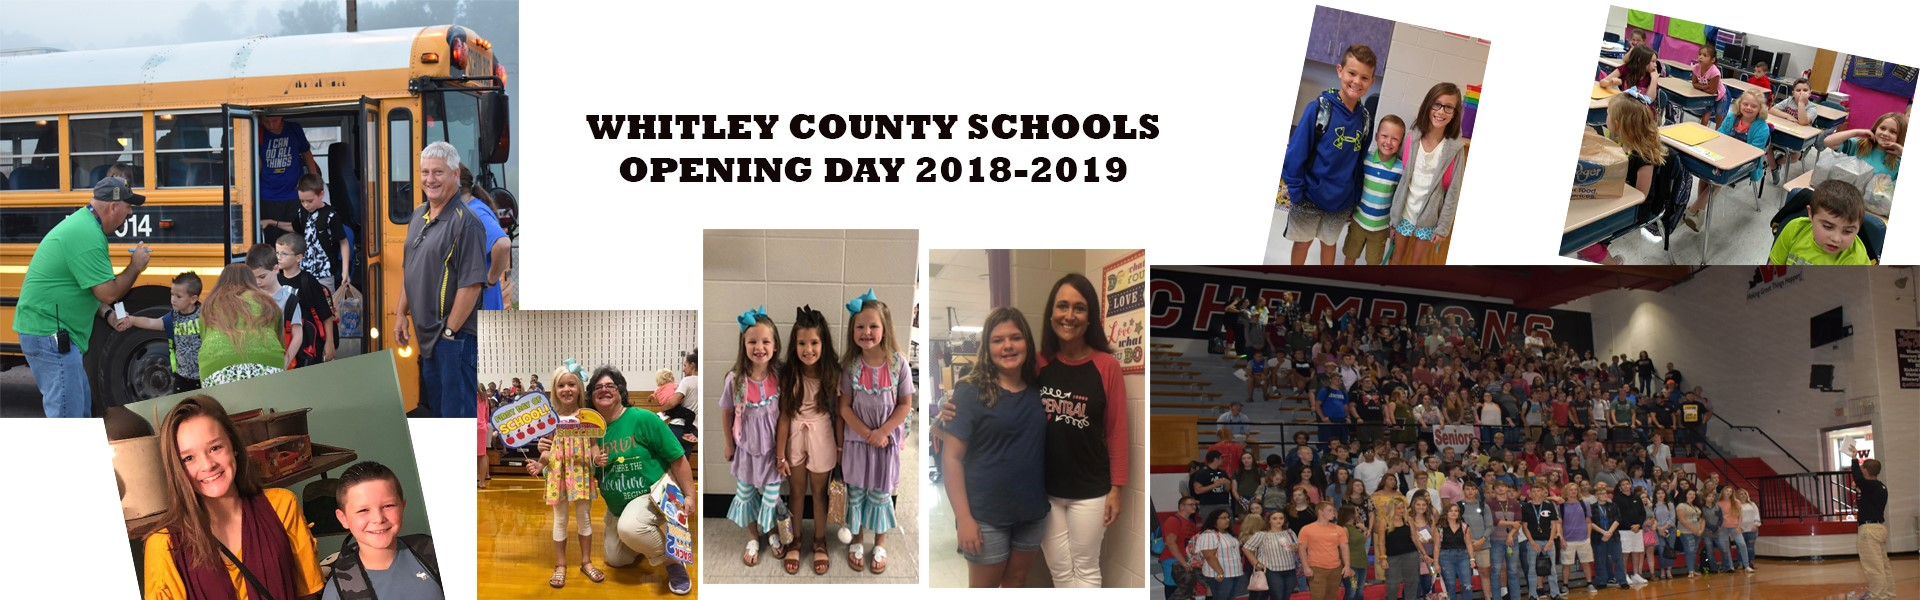 Whitley County School District Opening Day!